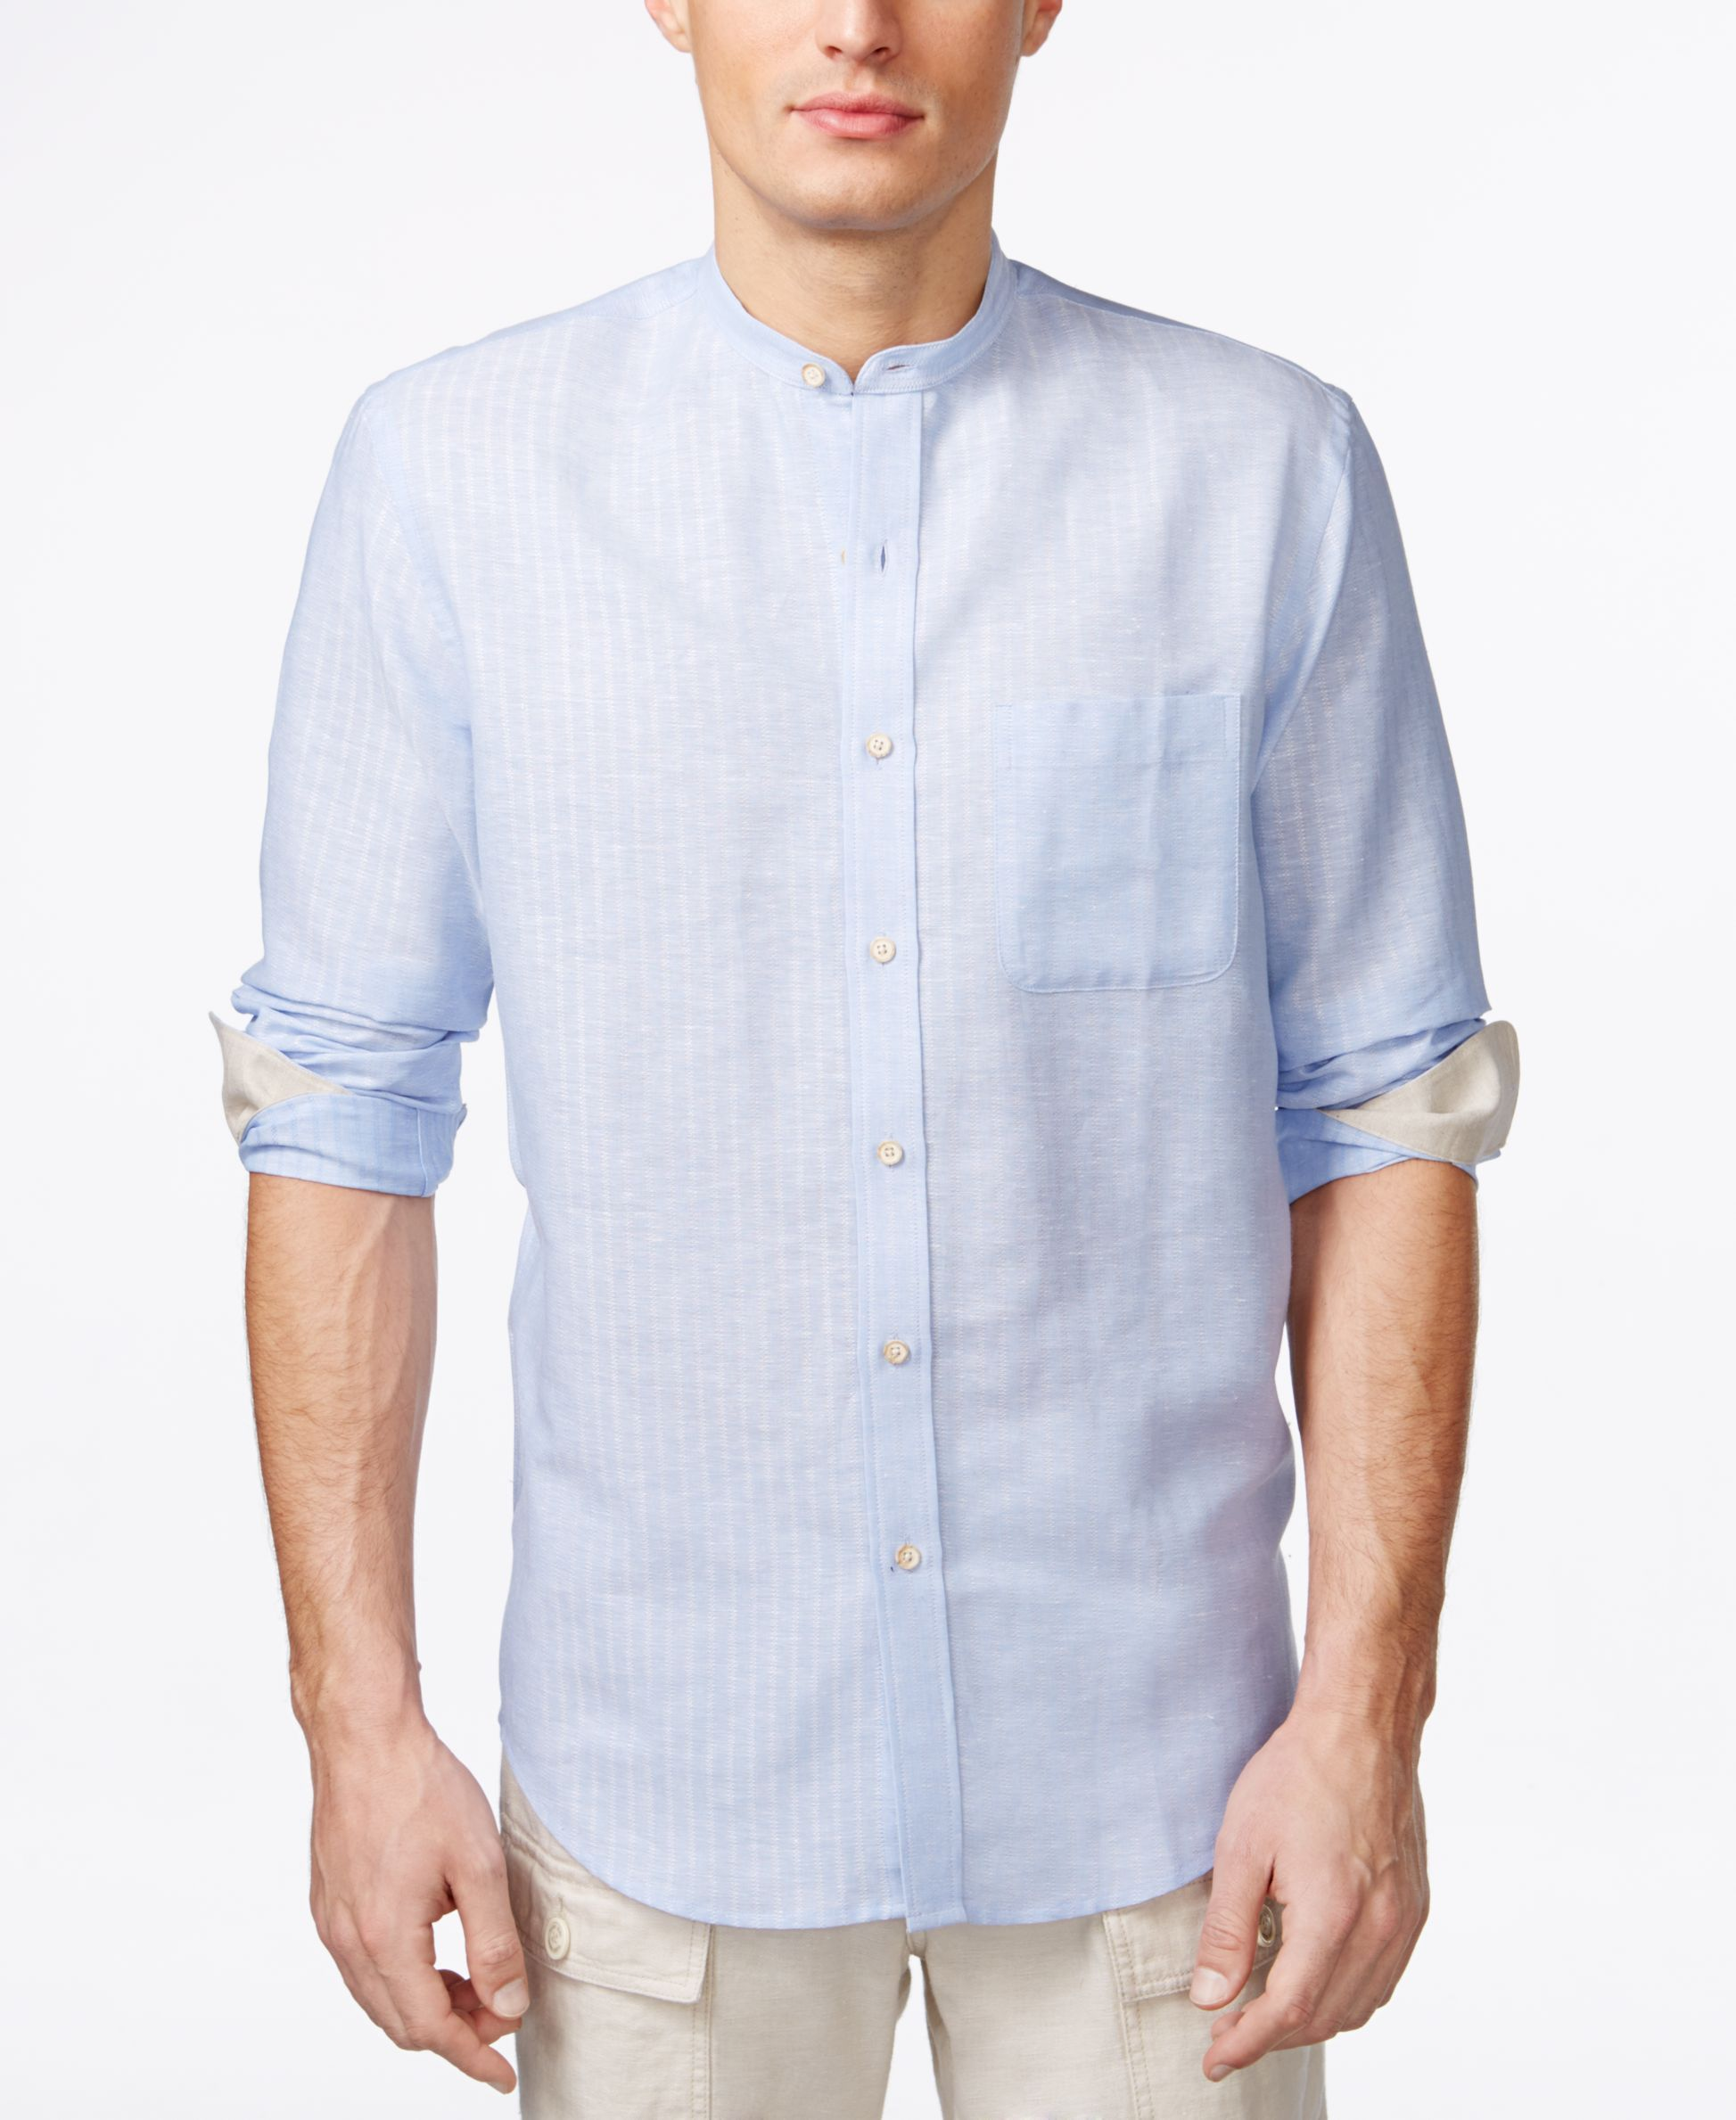 Tasso Elba Island Banded Collar Textured Striped Shirt